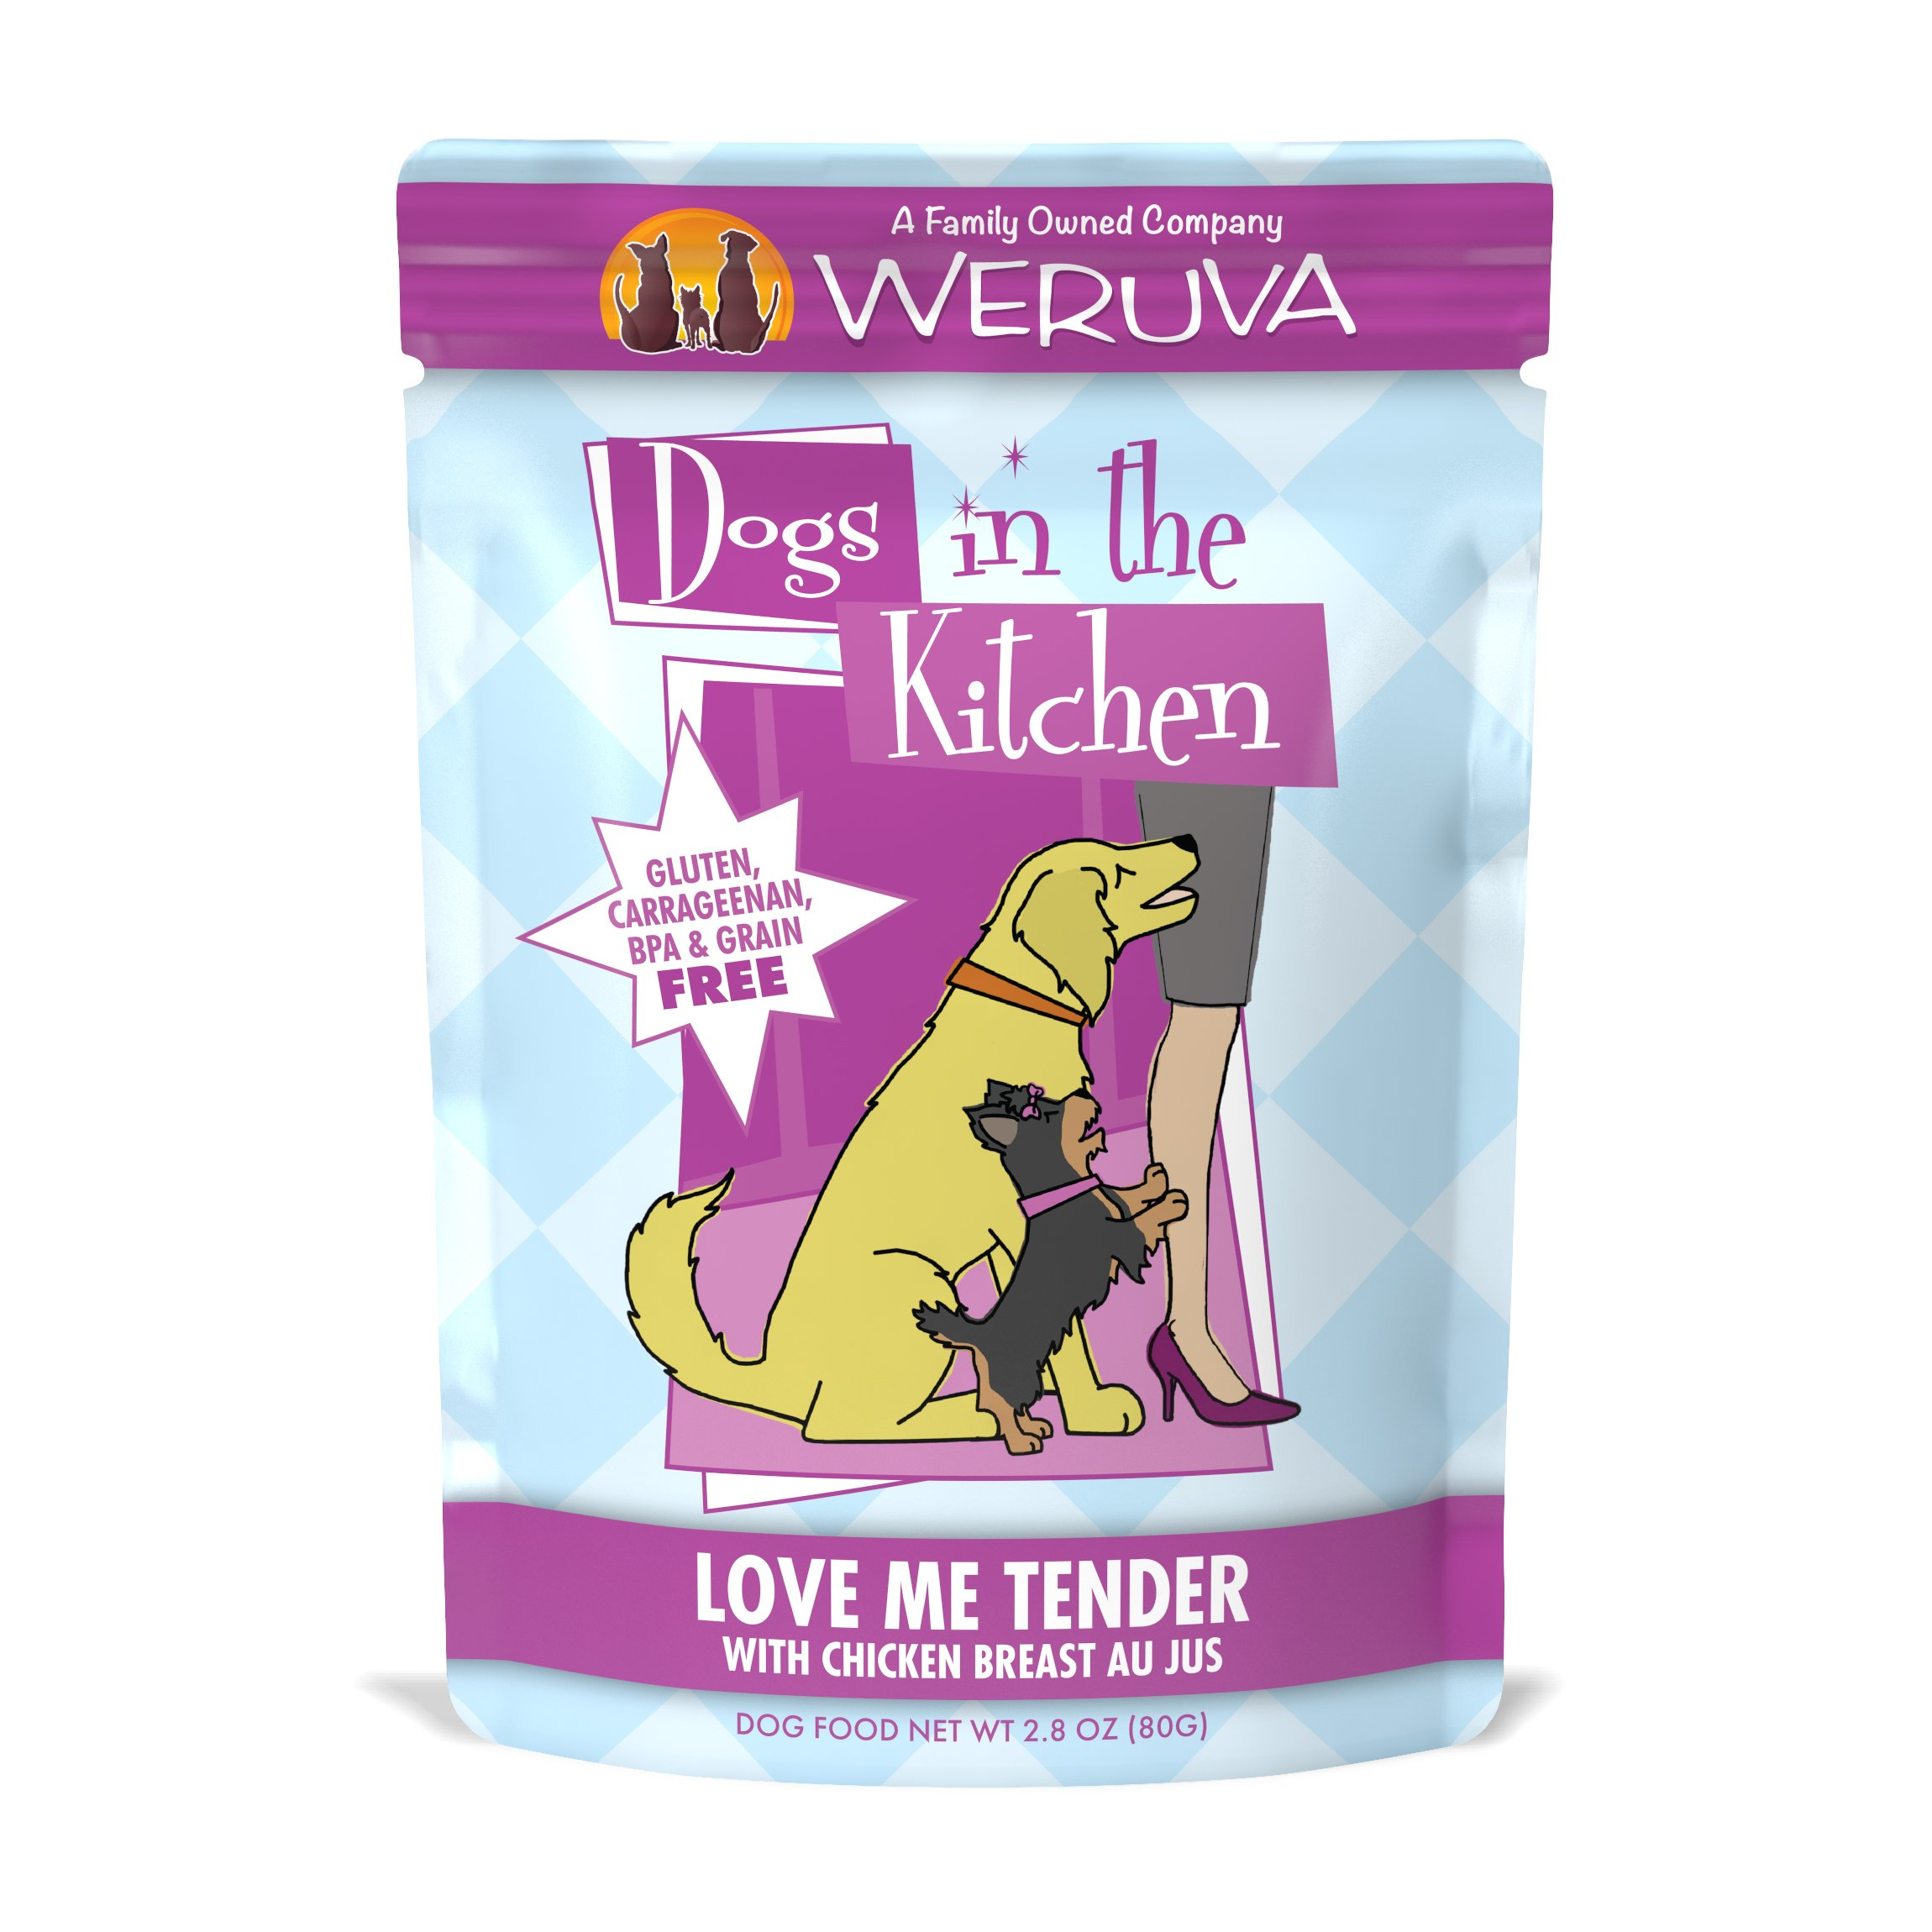 Weruva Dogs in the Kitchen, Love Me Tender with Chicken Breast Au Jus Dog Food, 2.8oz Pouch (Pack of 12)